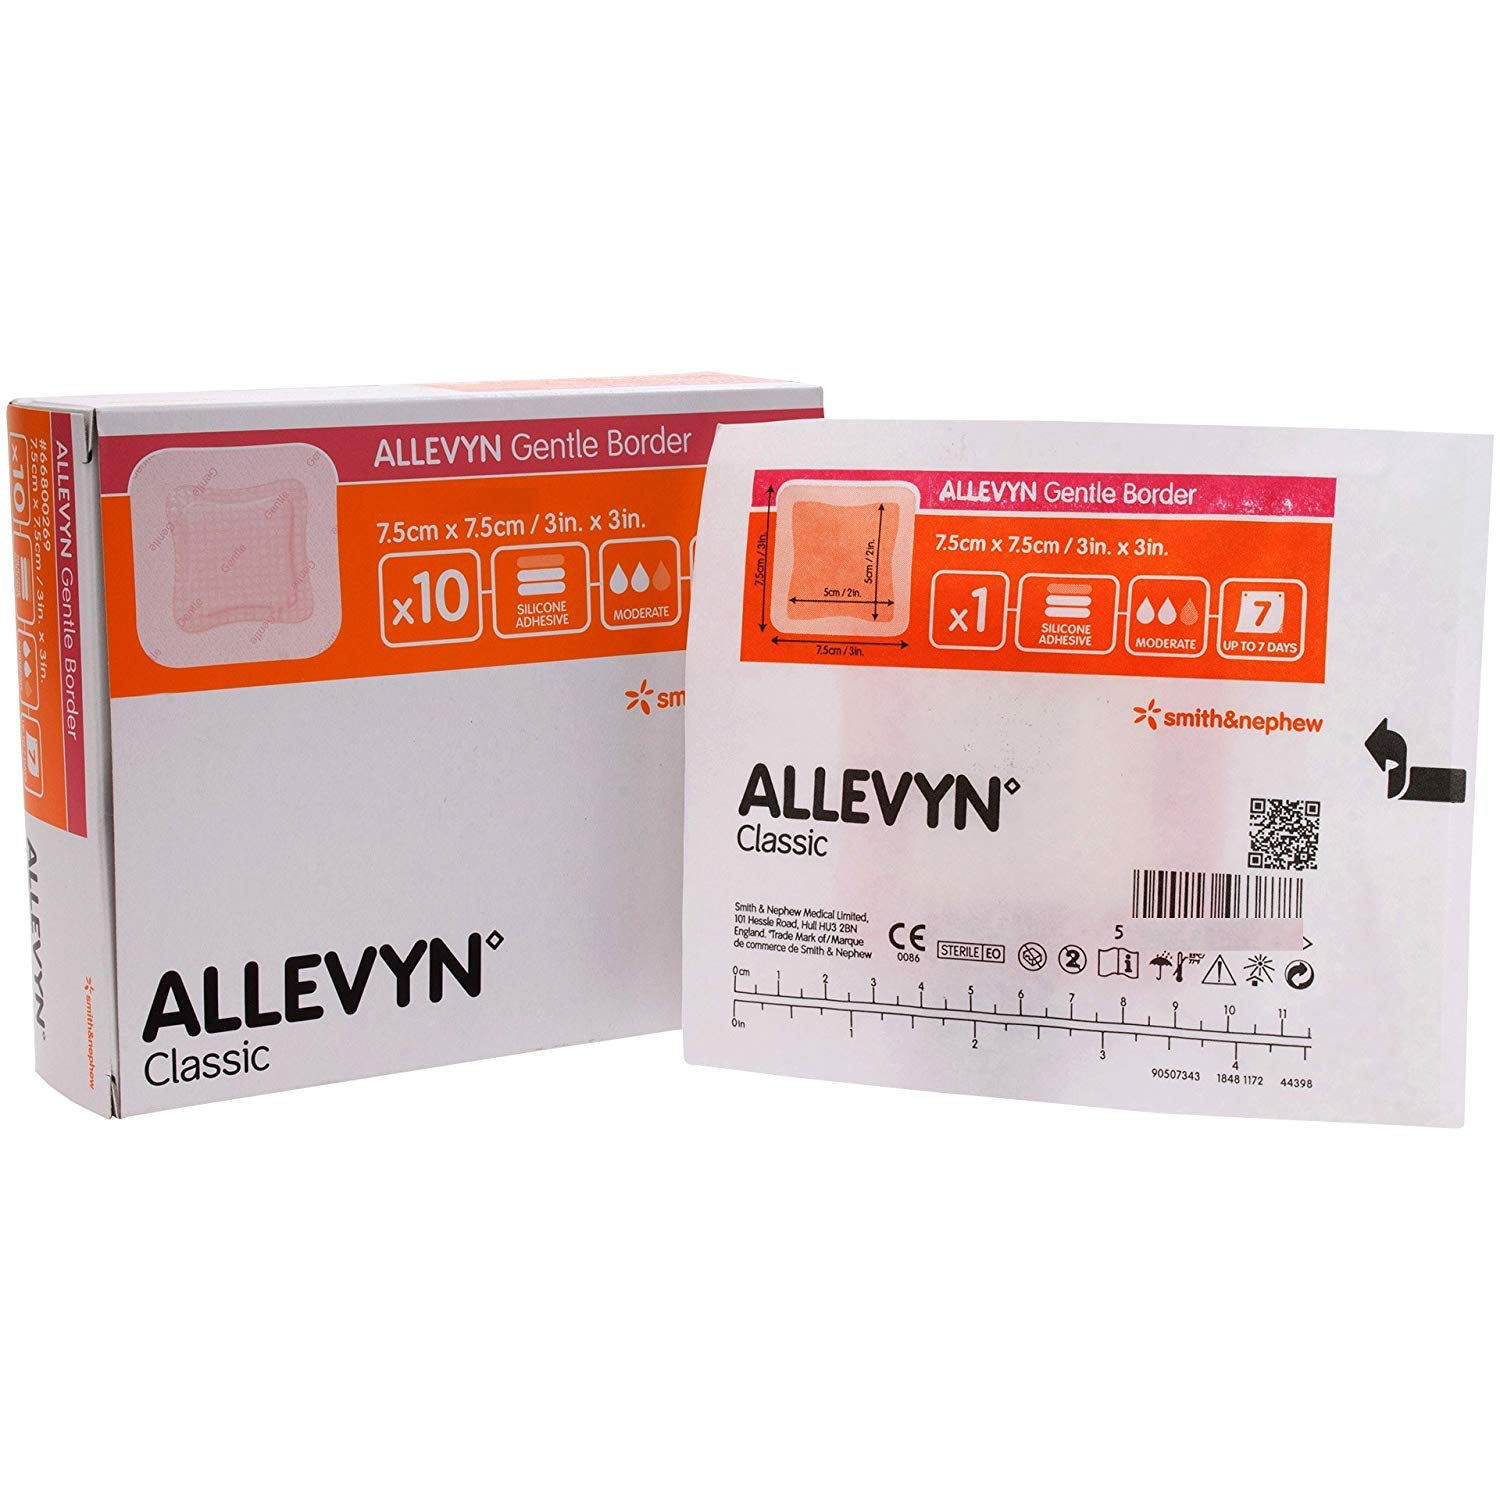 Allevyn Smith and Nephew 66800276 Gentle Border Dressing 3'' x 3'' - Box of 10 (2 Pack - 10 Count/Box)